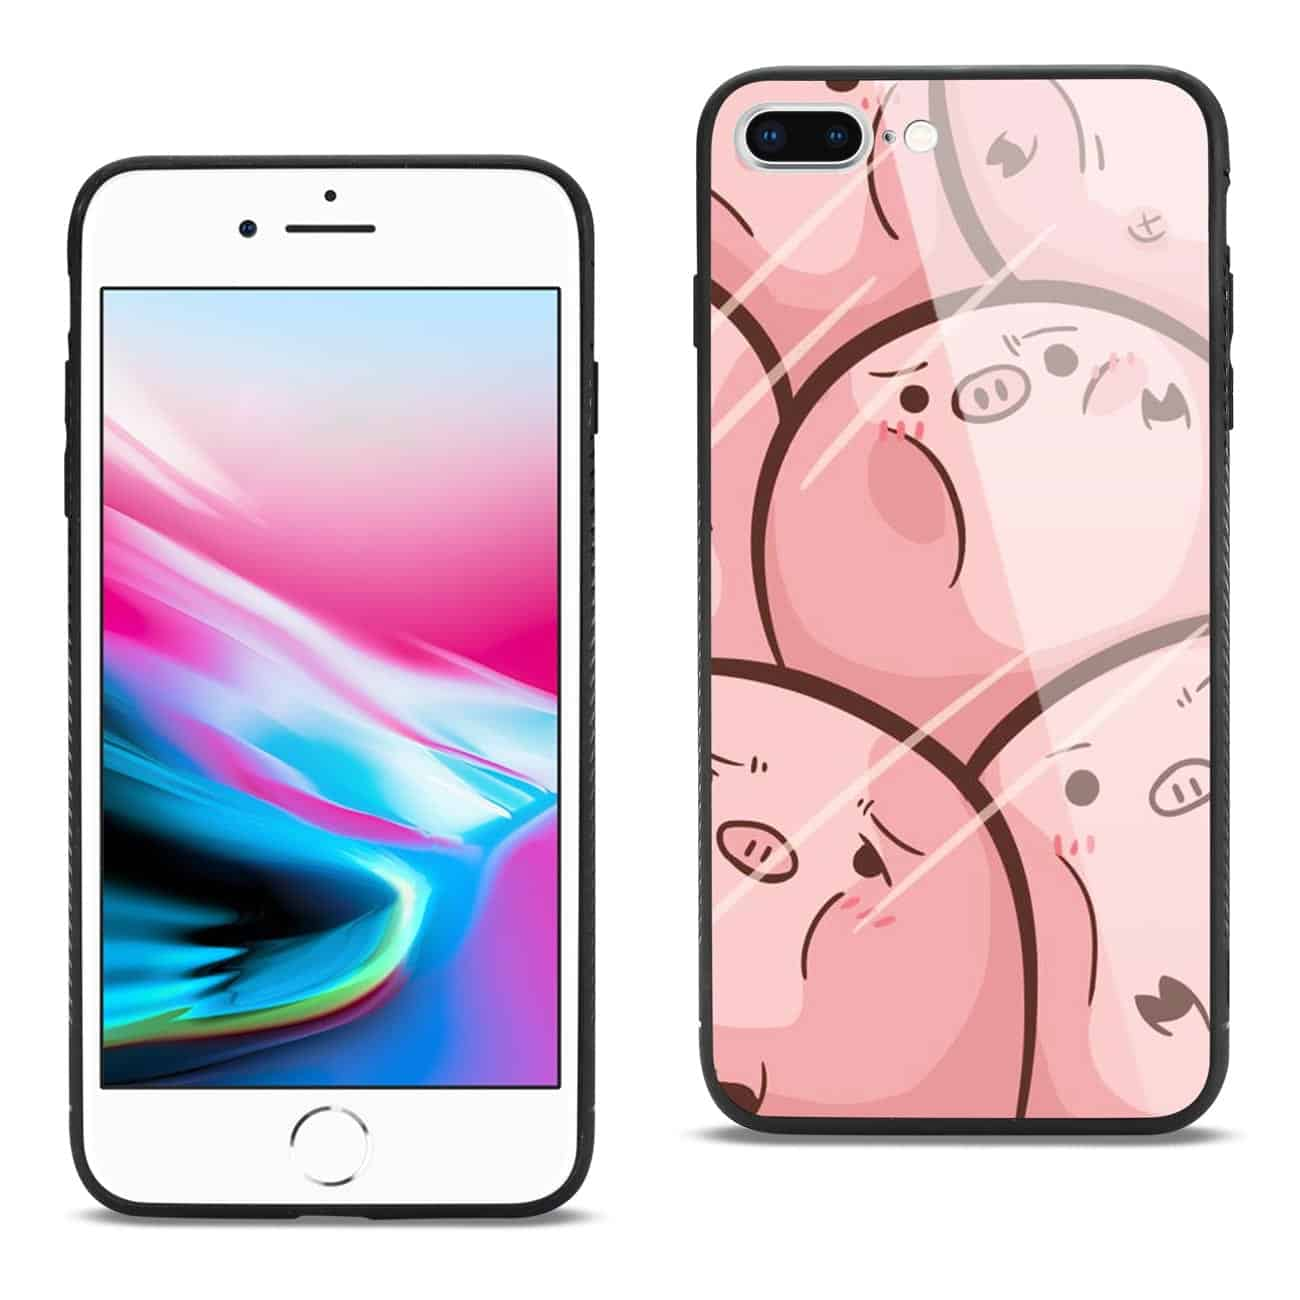 iPhone 8 Plus Hard Glass Design TPU Case With Pink Pig Faces